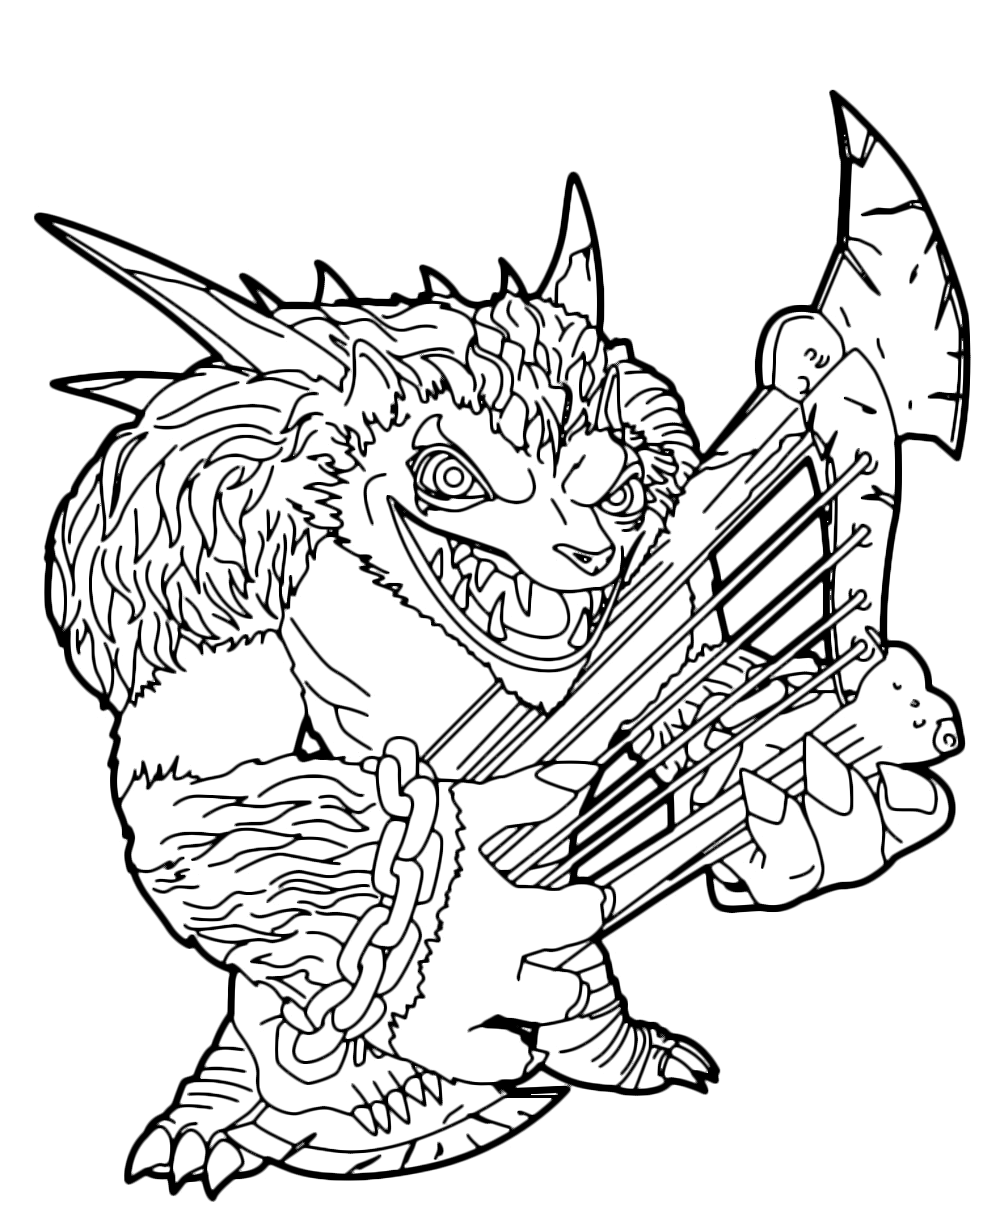 Skylanders Trap Team Wolfgang Coloring Pages | Coloring Pages